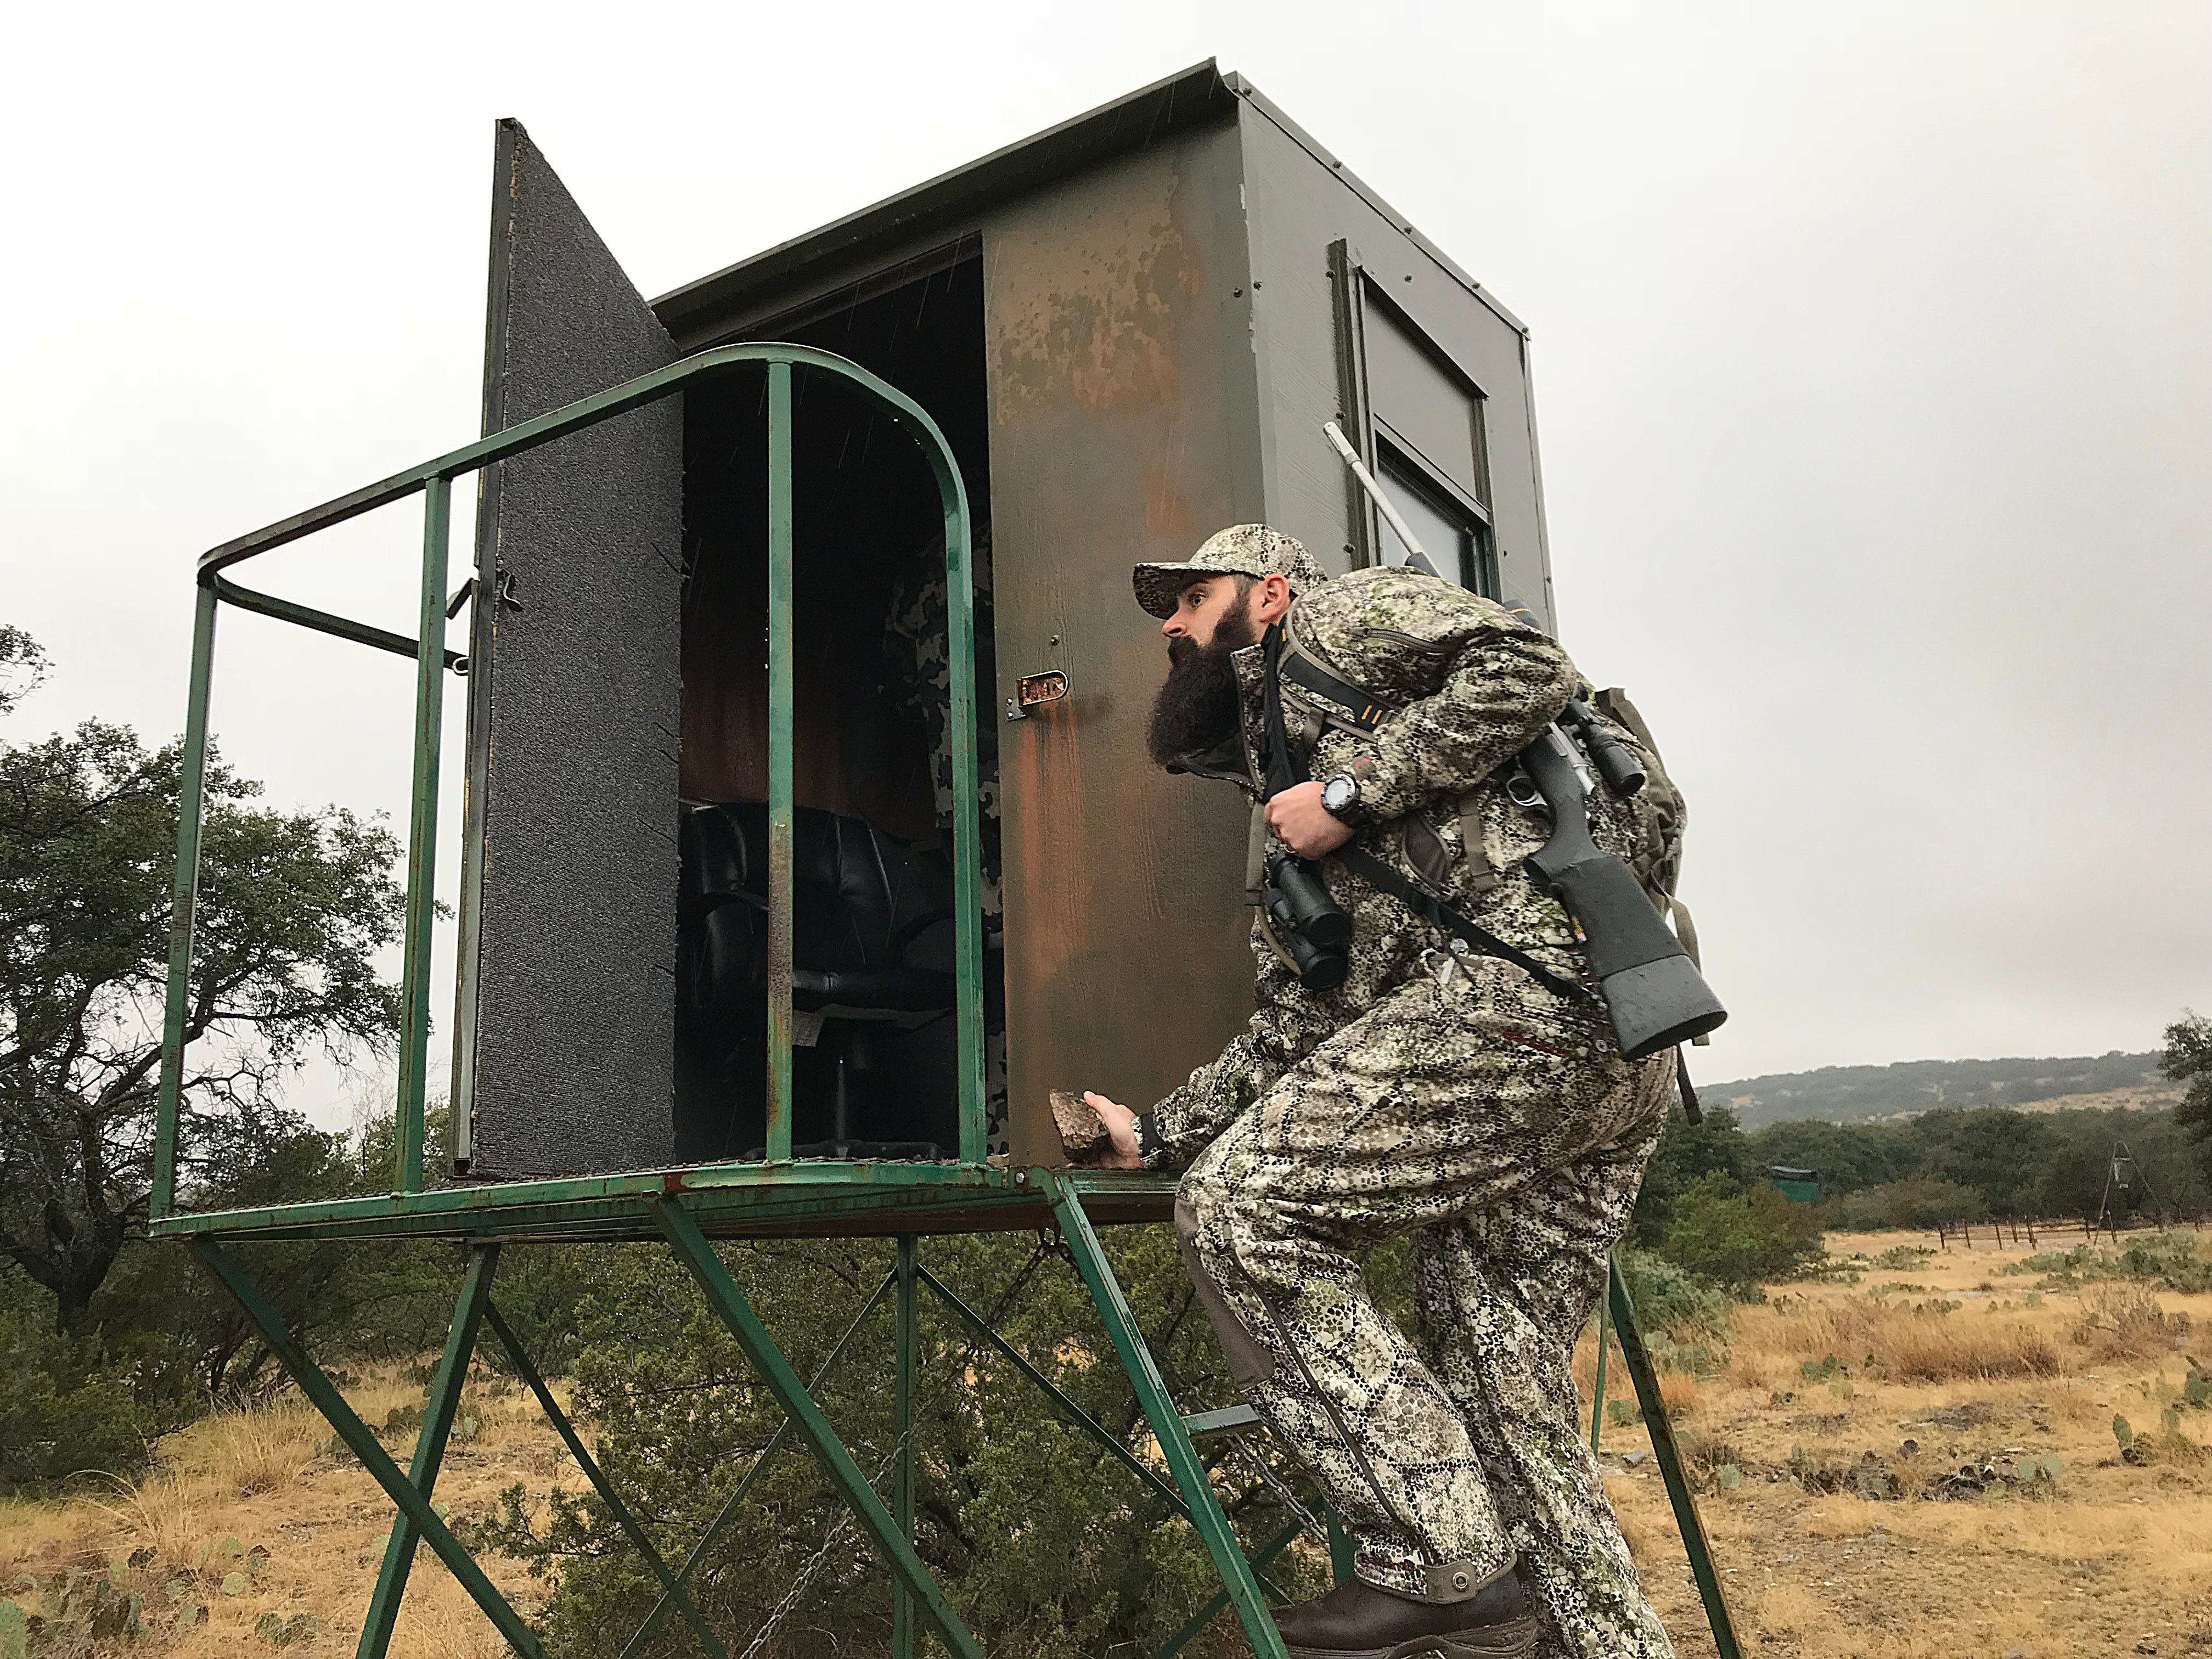 Joseph Lewis climbs into a deer blind during the annual deer hunt for veterans in Christoval Friday, Dec. 7, 2018 sponsored by San Angelo Support for Veterans and Lone Star Warriors Outdoors.